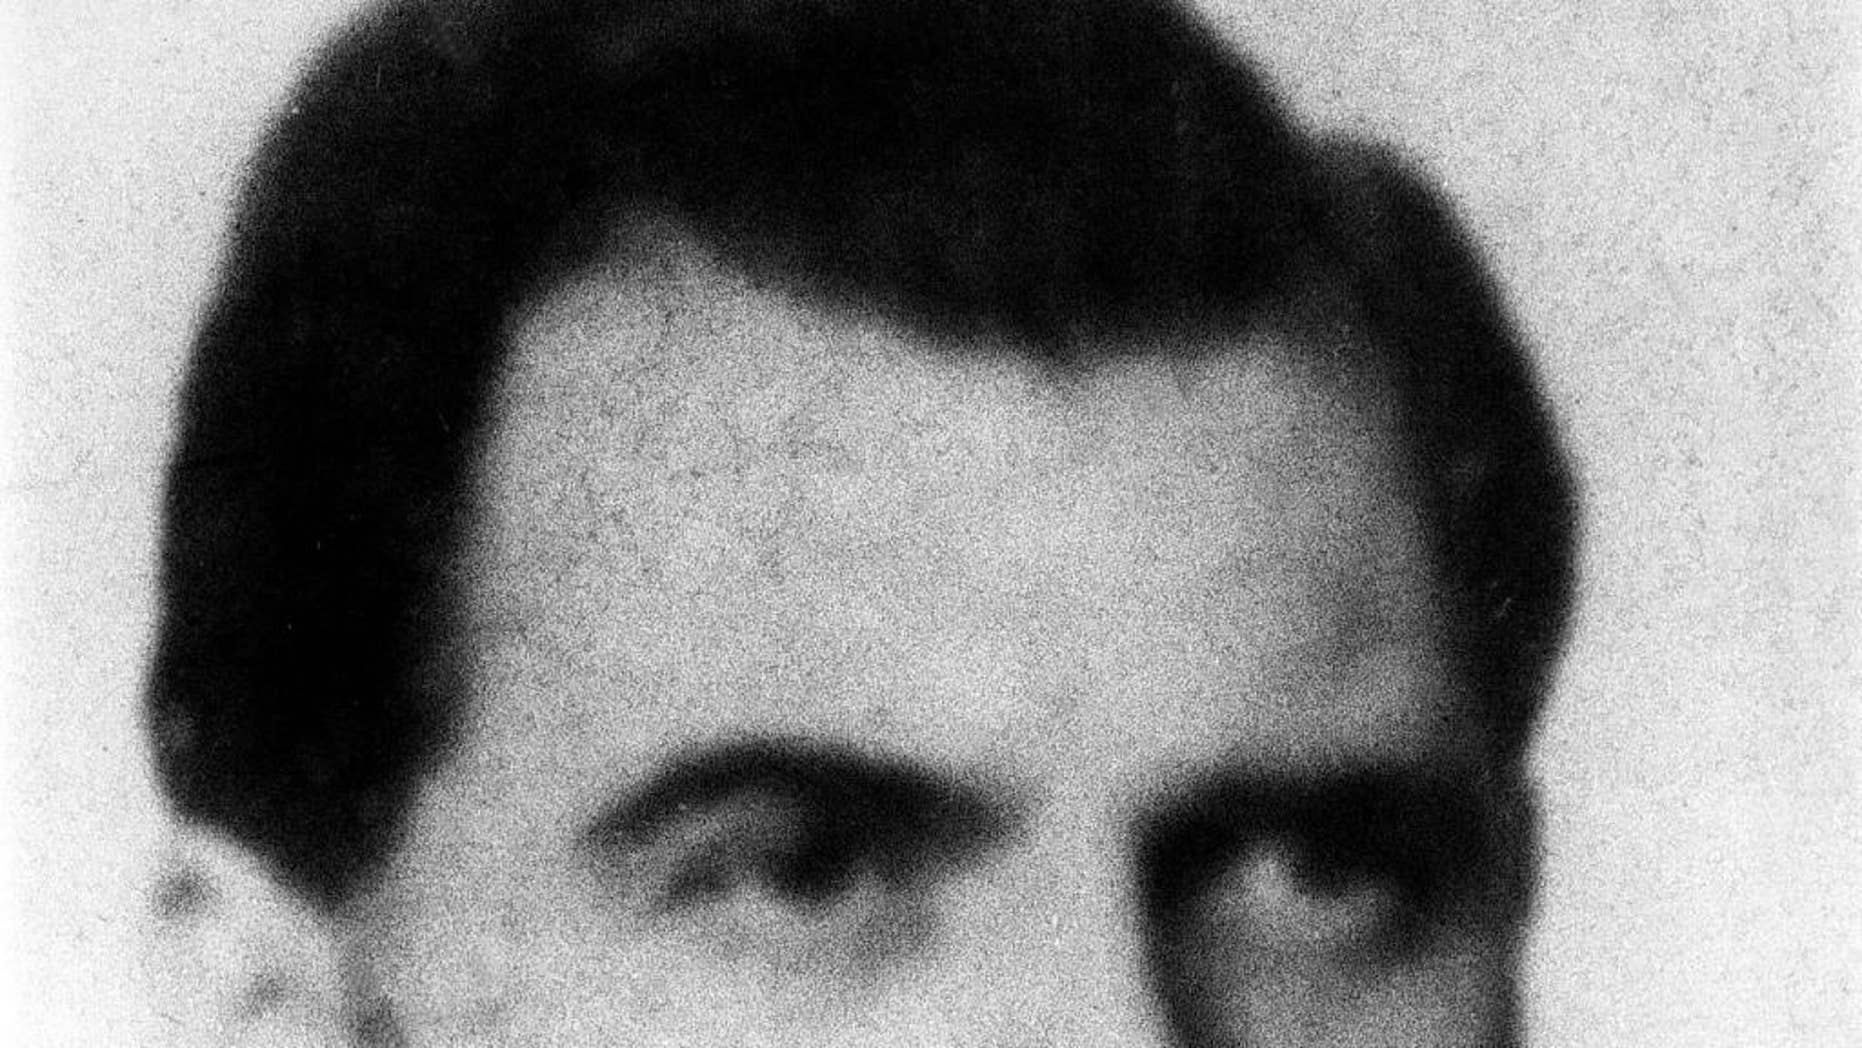 FILE - This file picture of 1956 shows the WWII war criminal Josef Mengele. Archaeologists in Berlin have unearthed a large number of human bones from a site close to where Nazi scientists carried out research on body parts of death camp victims sent to them by sadistic SS doctor Mengele. (AP Photo, file)